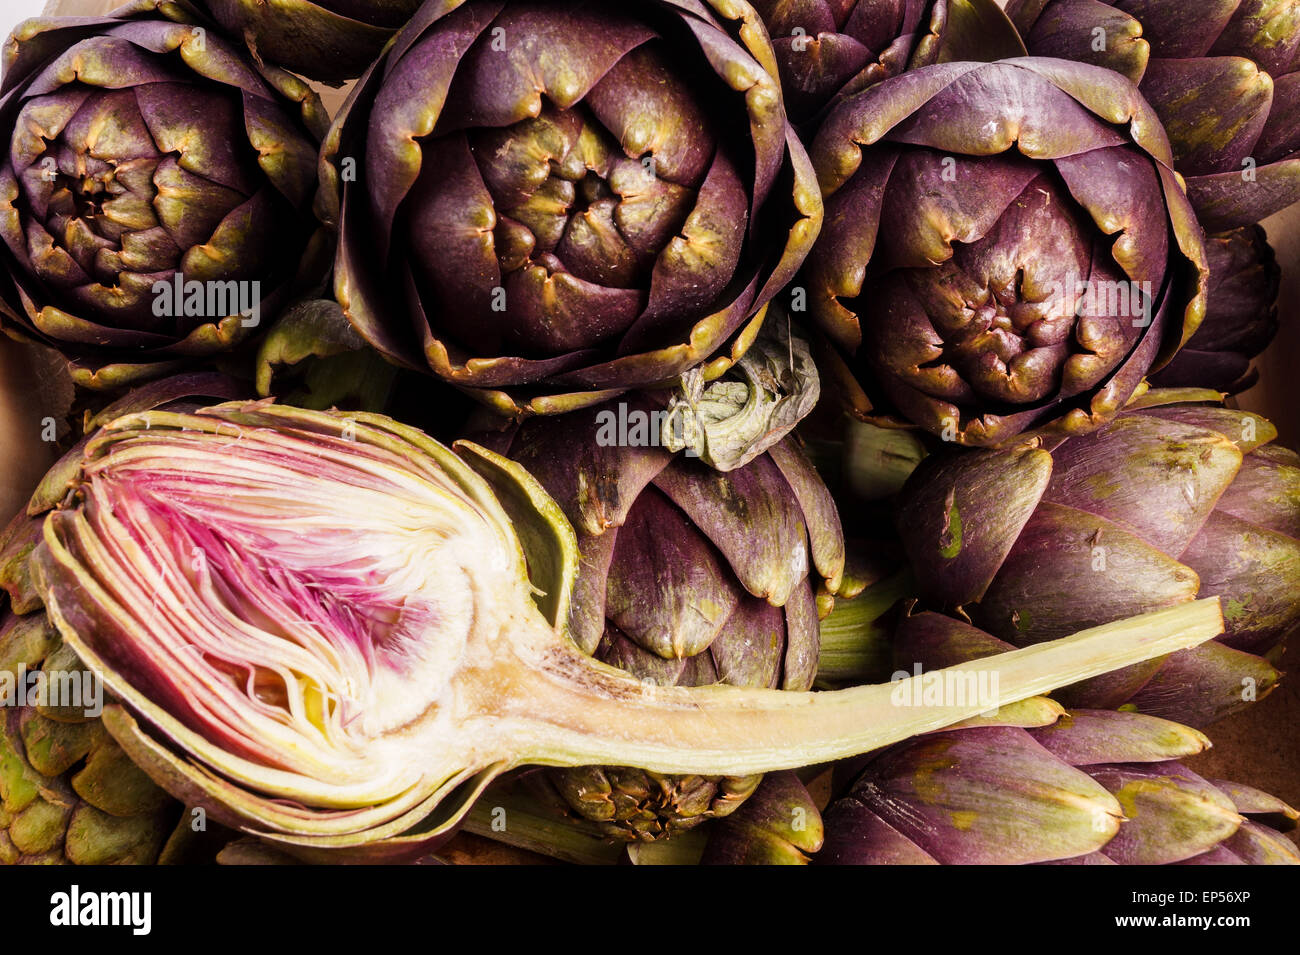 Pile of Purple artichokes ready for cooking. One artichoke is cut - Stock Image